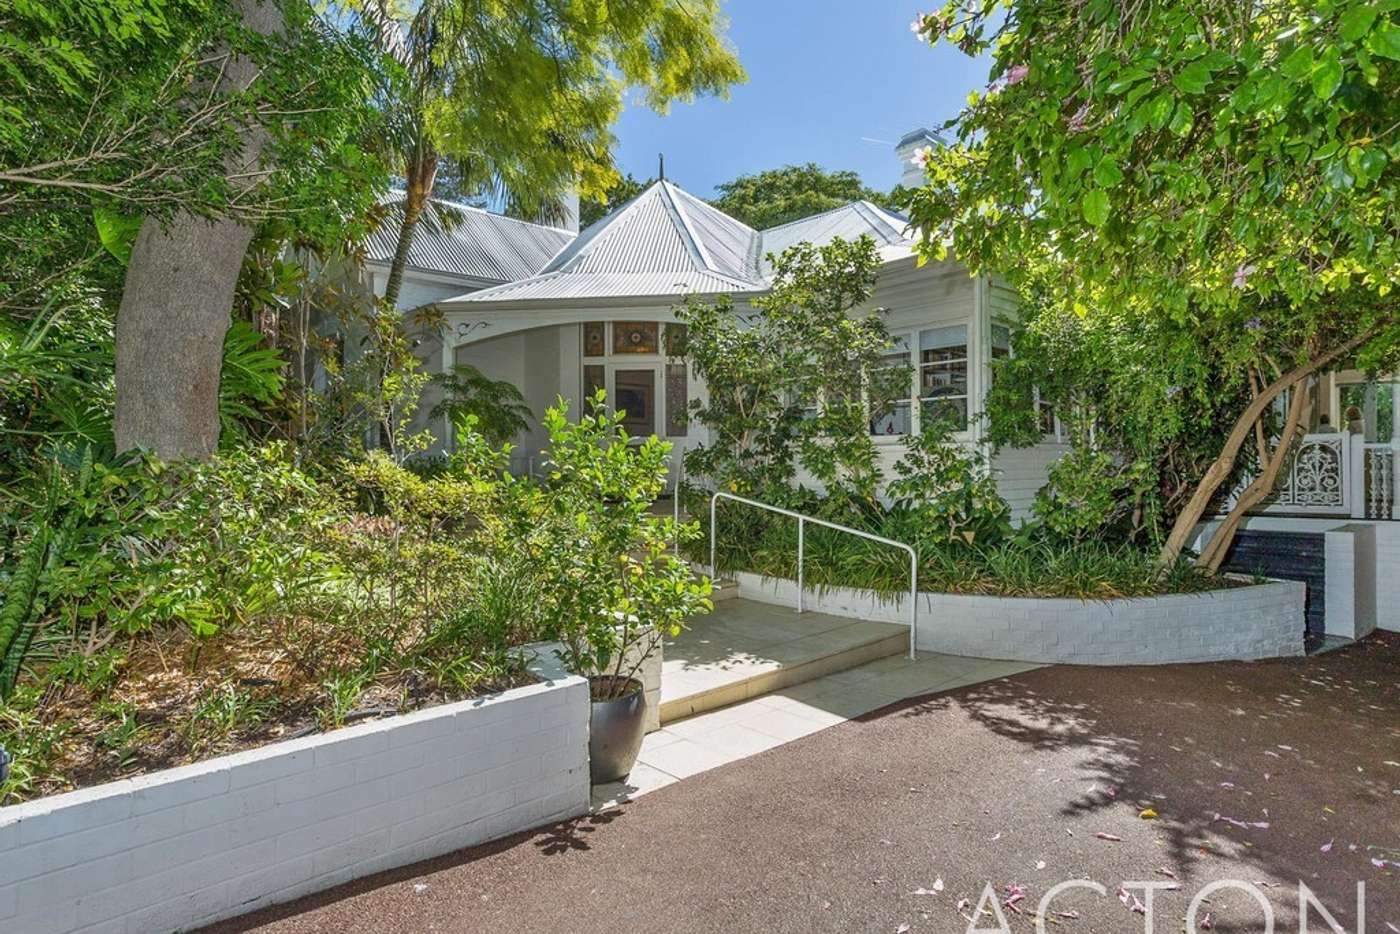 Fifth view of Homely house listing, 73 Shenton Road, Swanbourne WA 6010